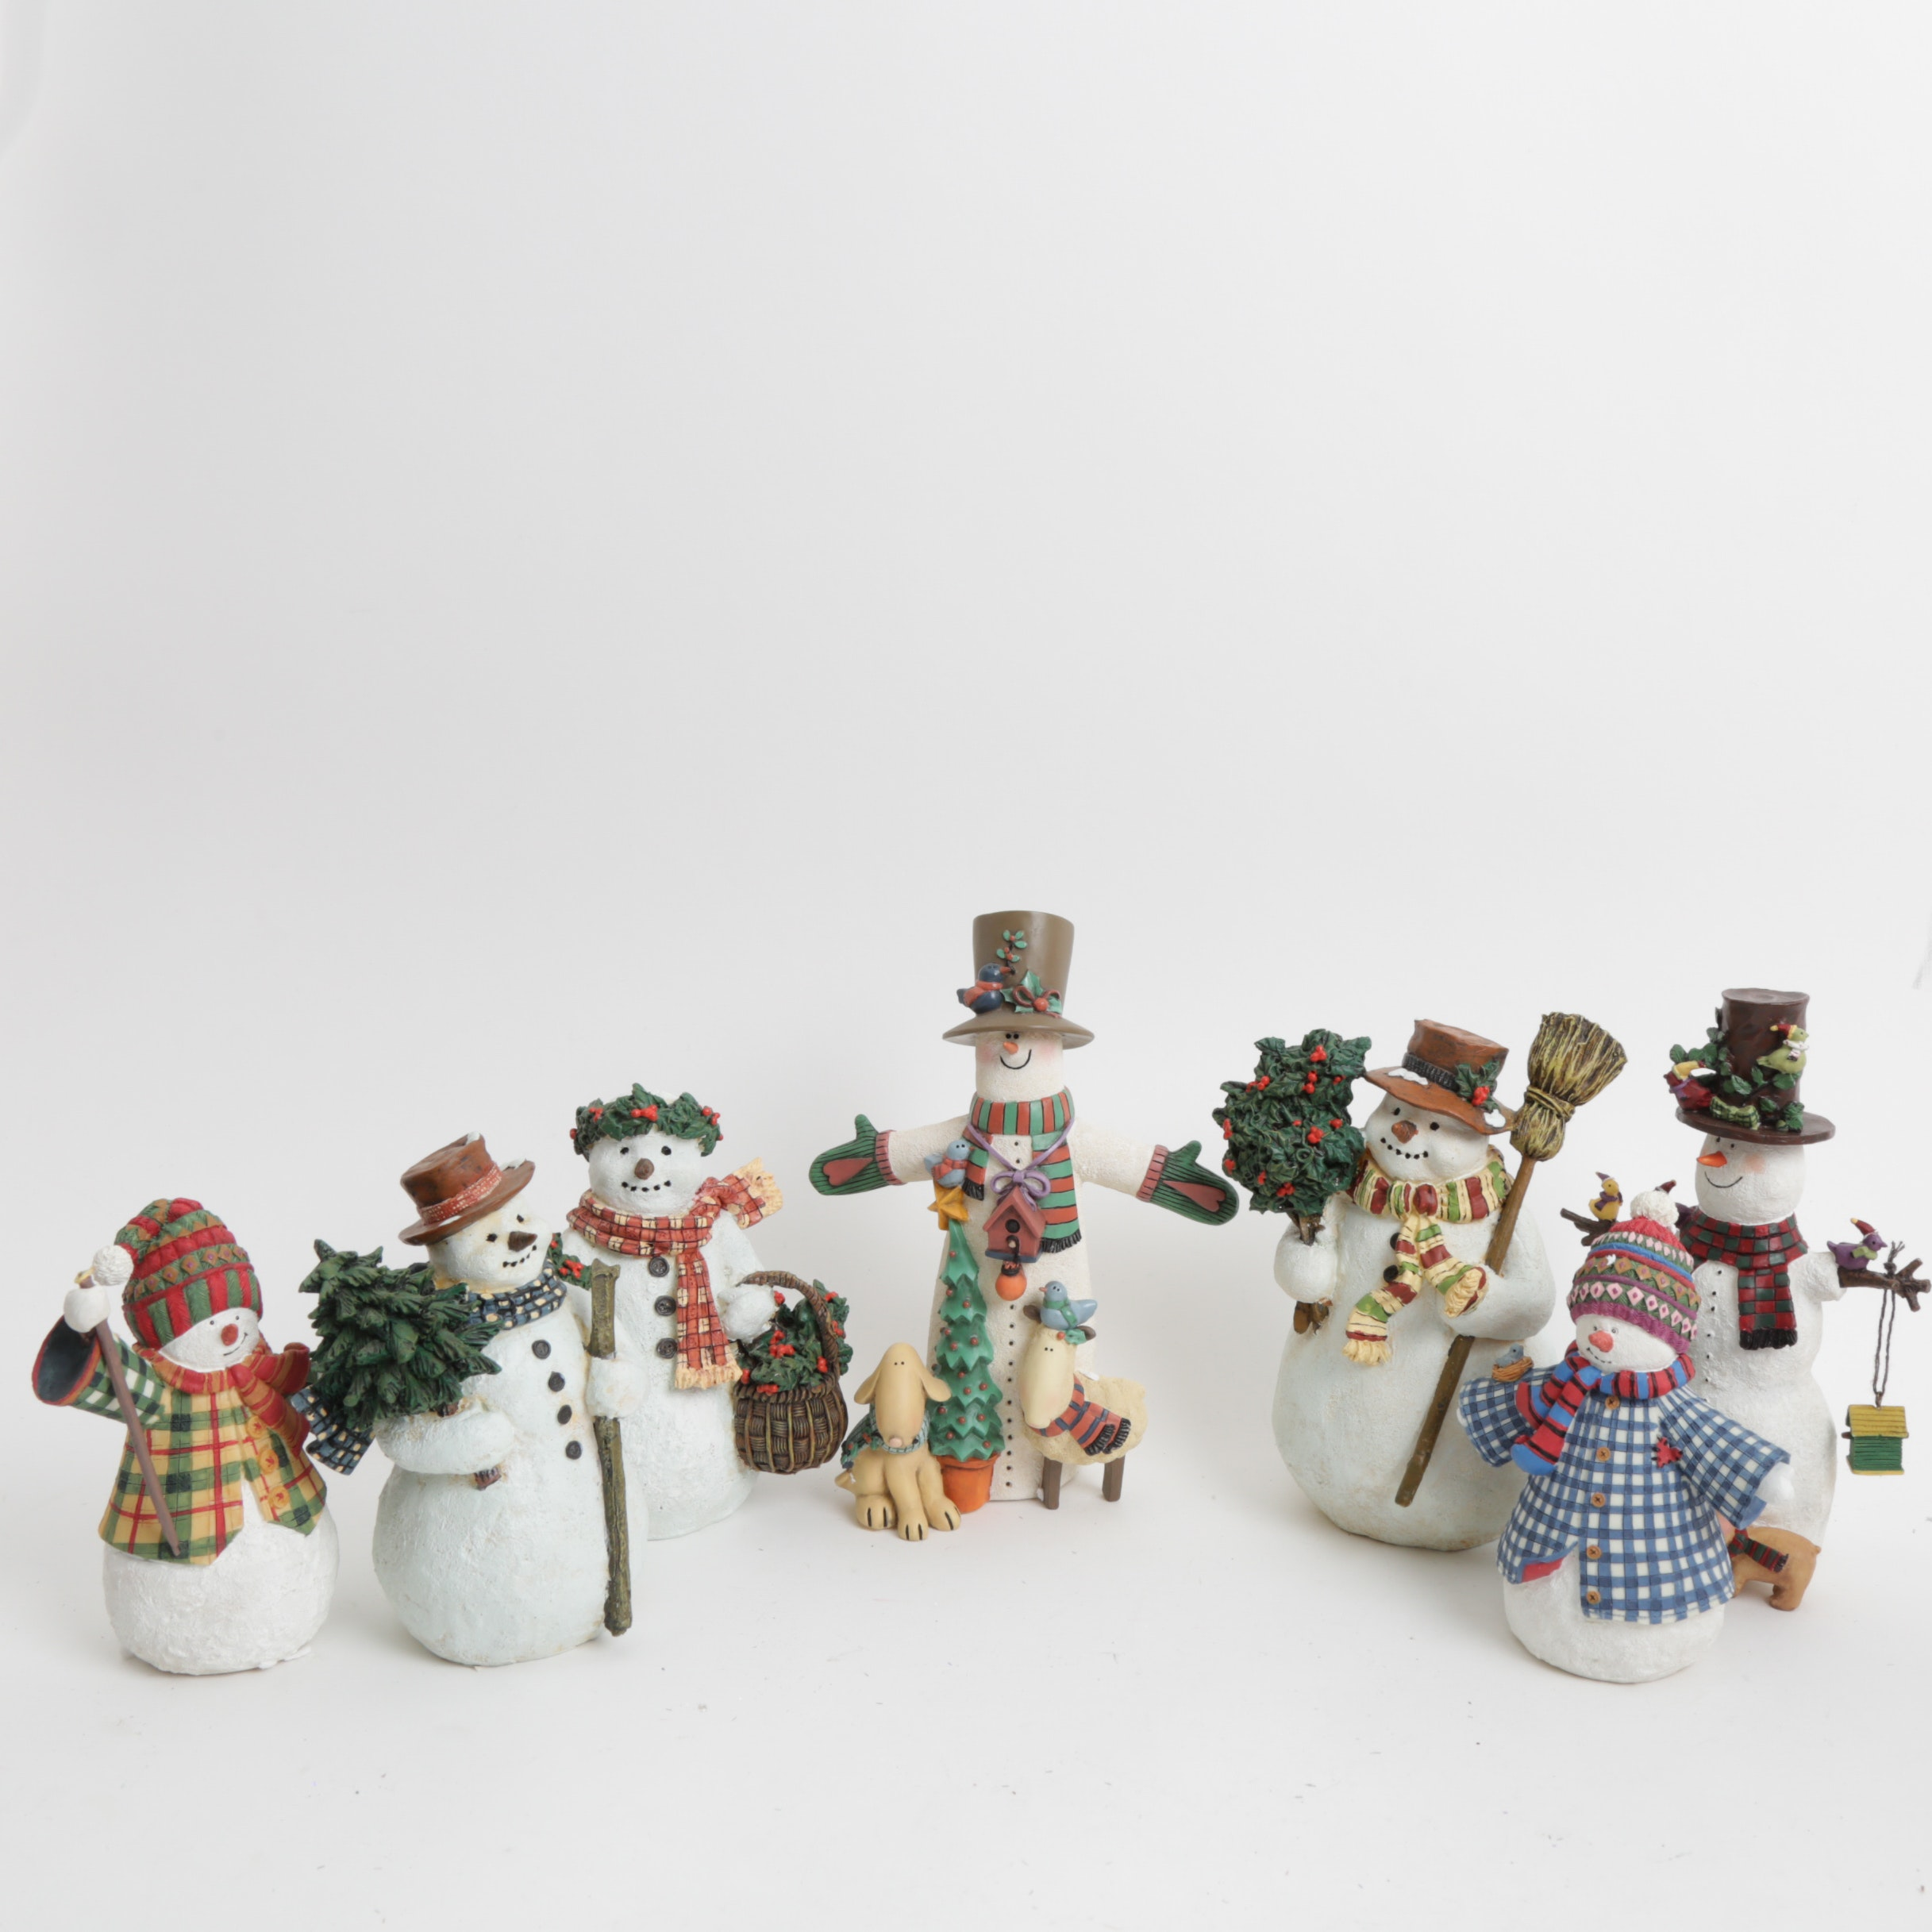 Set of Lang and Wise Snowman Collectibles